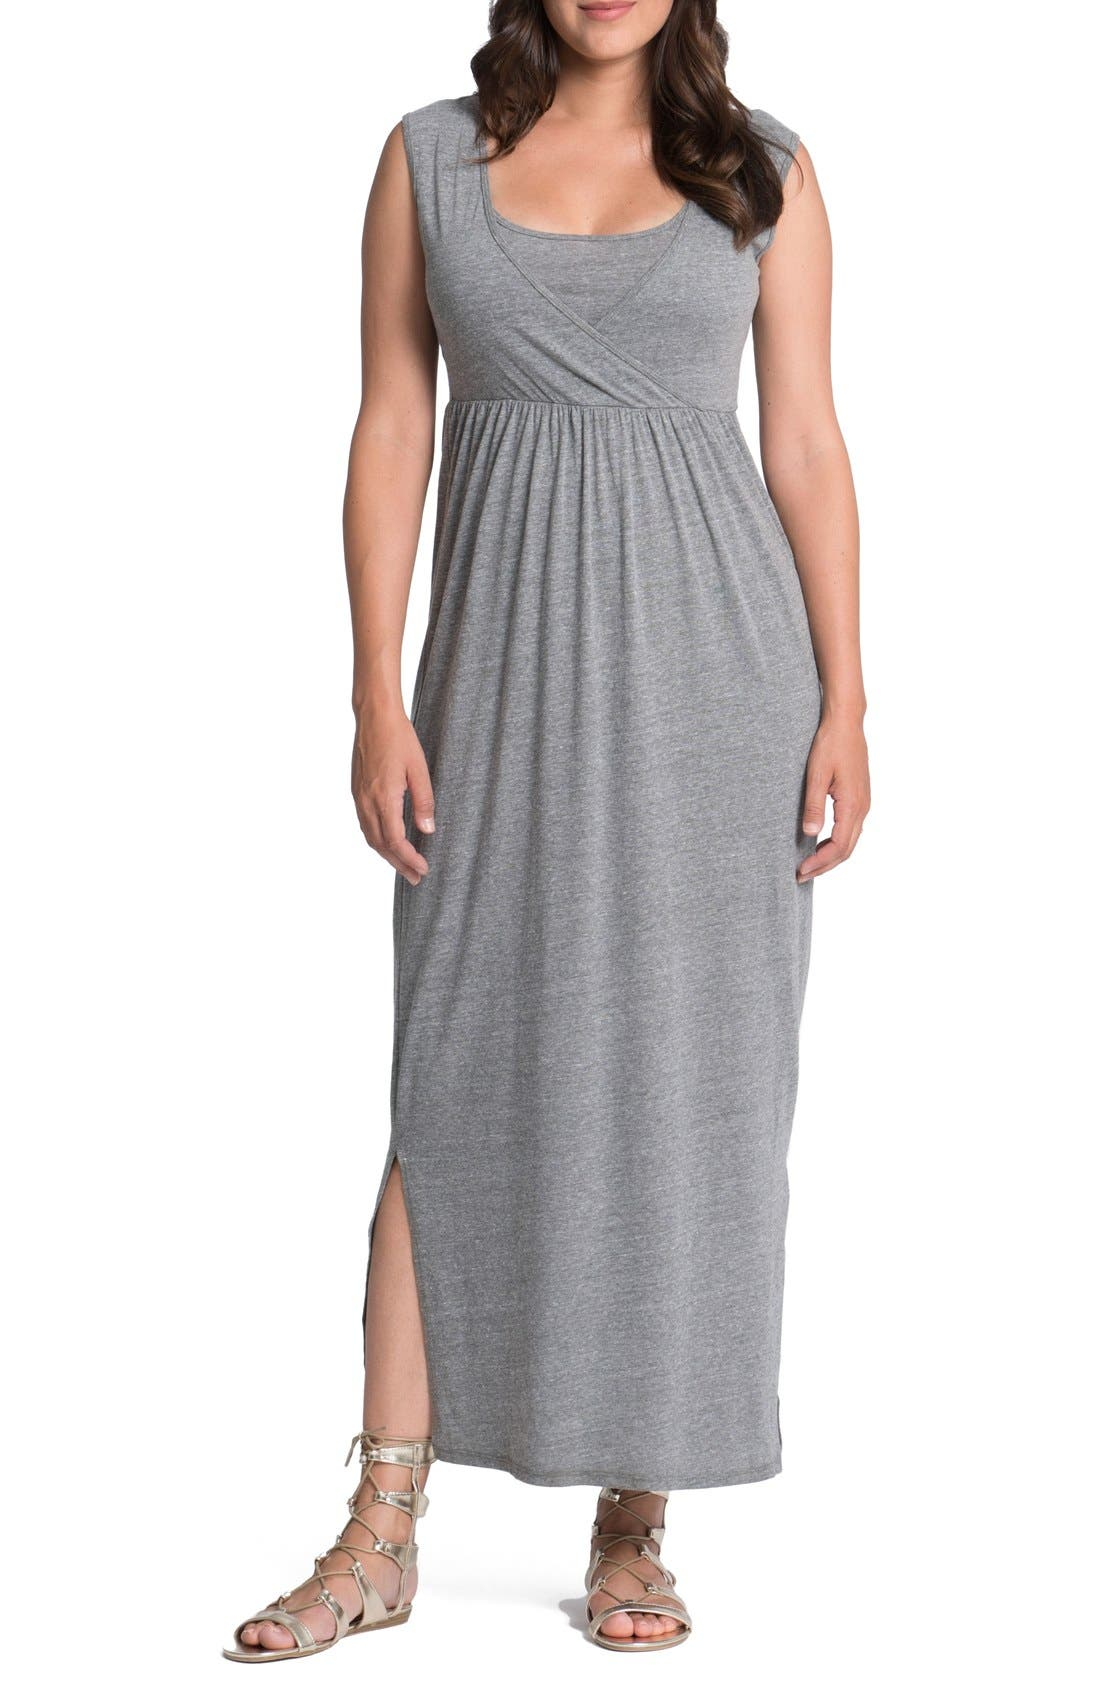 Main Image - Bun Maternity Cross Top Maternity/Nursing Maxi Dress